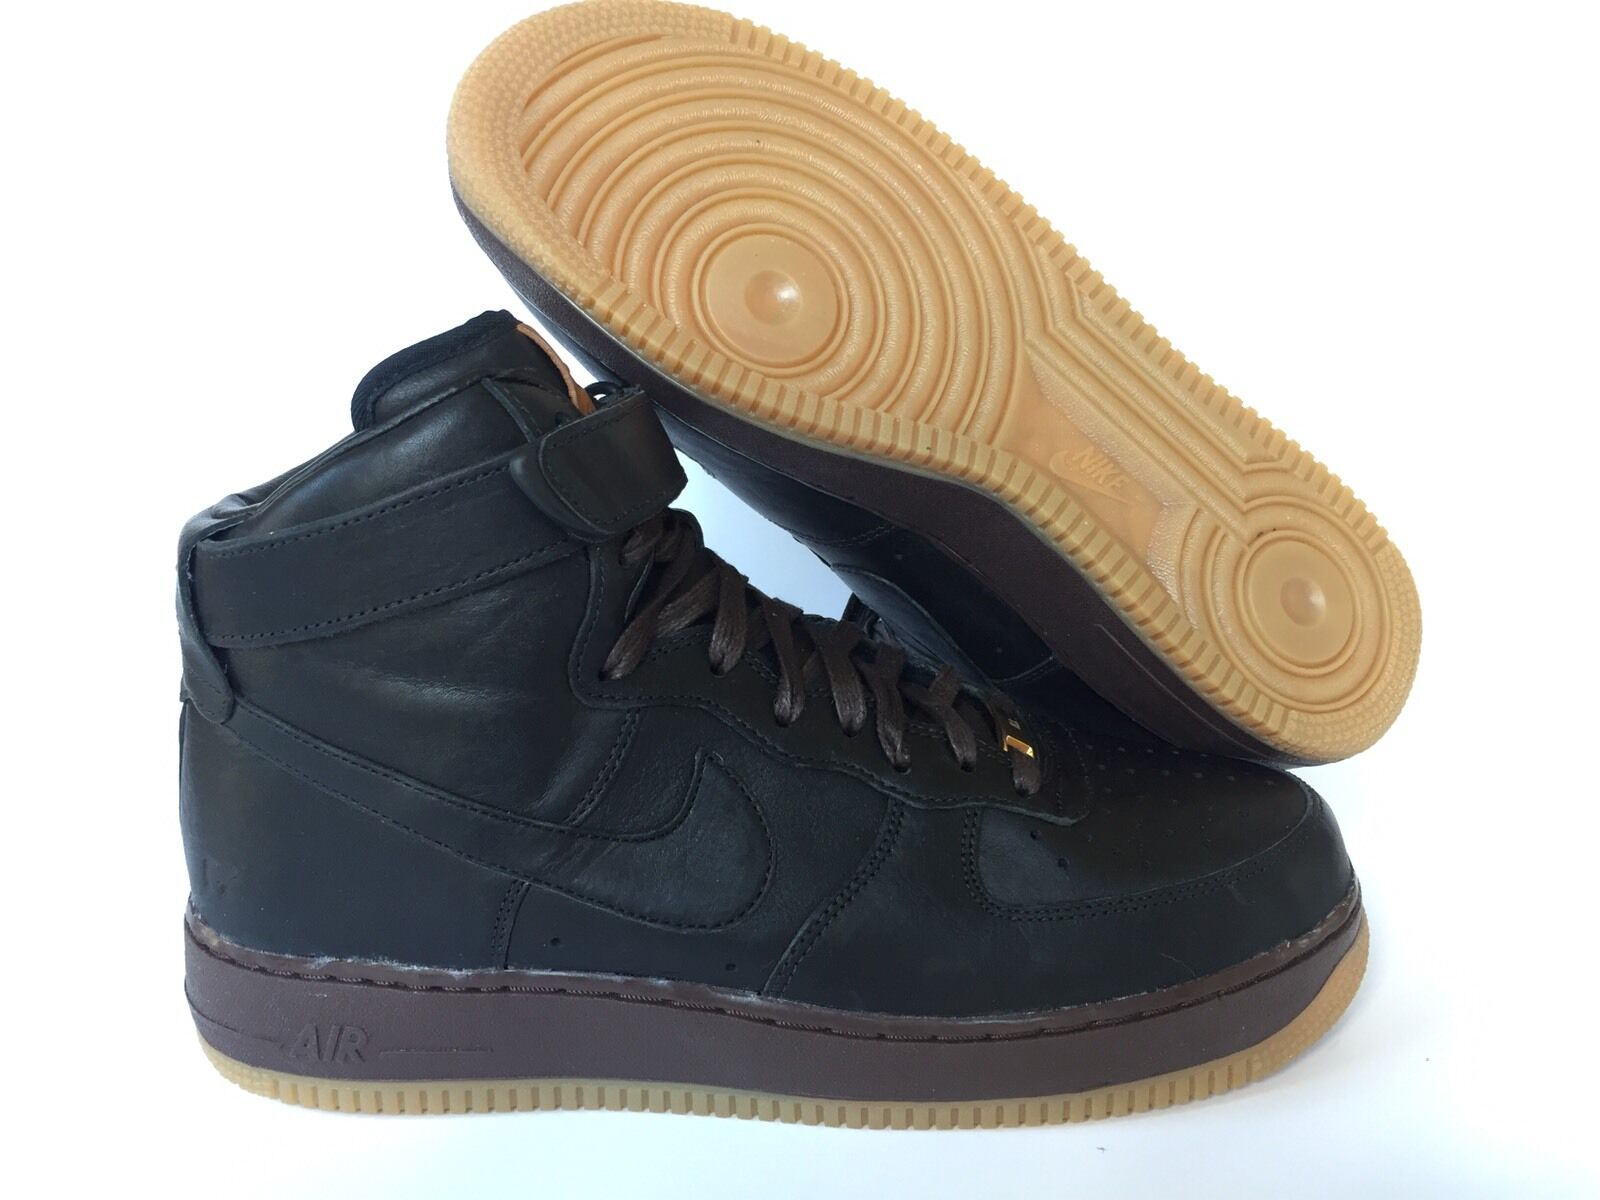 NIKEiD AIR FORCE 1 BRAND NEW LEATHER [ 921290-991 ] US SZ 10.5